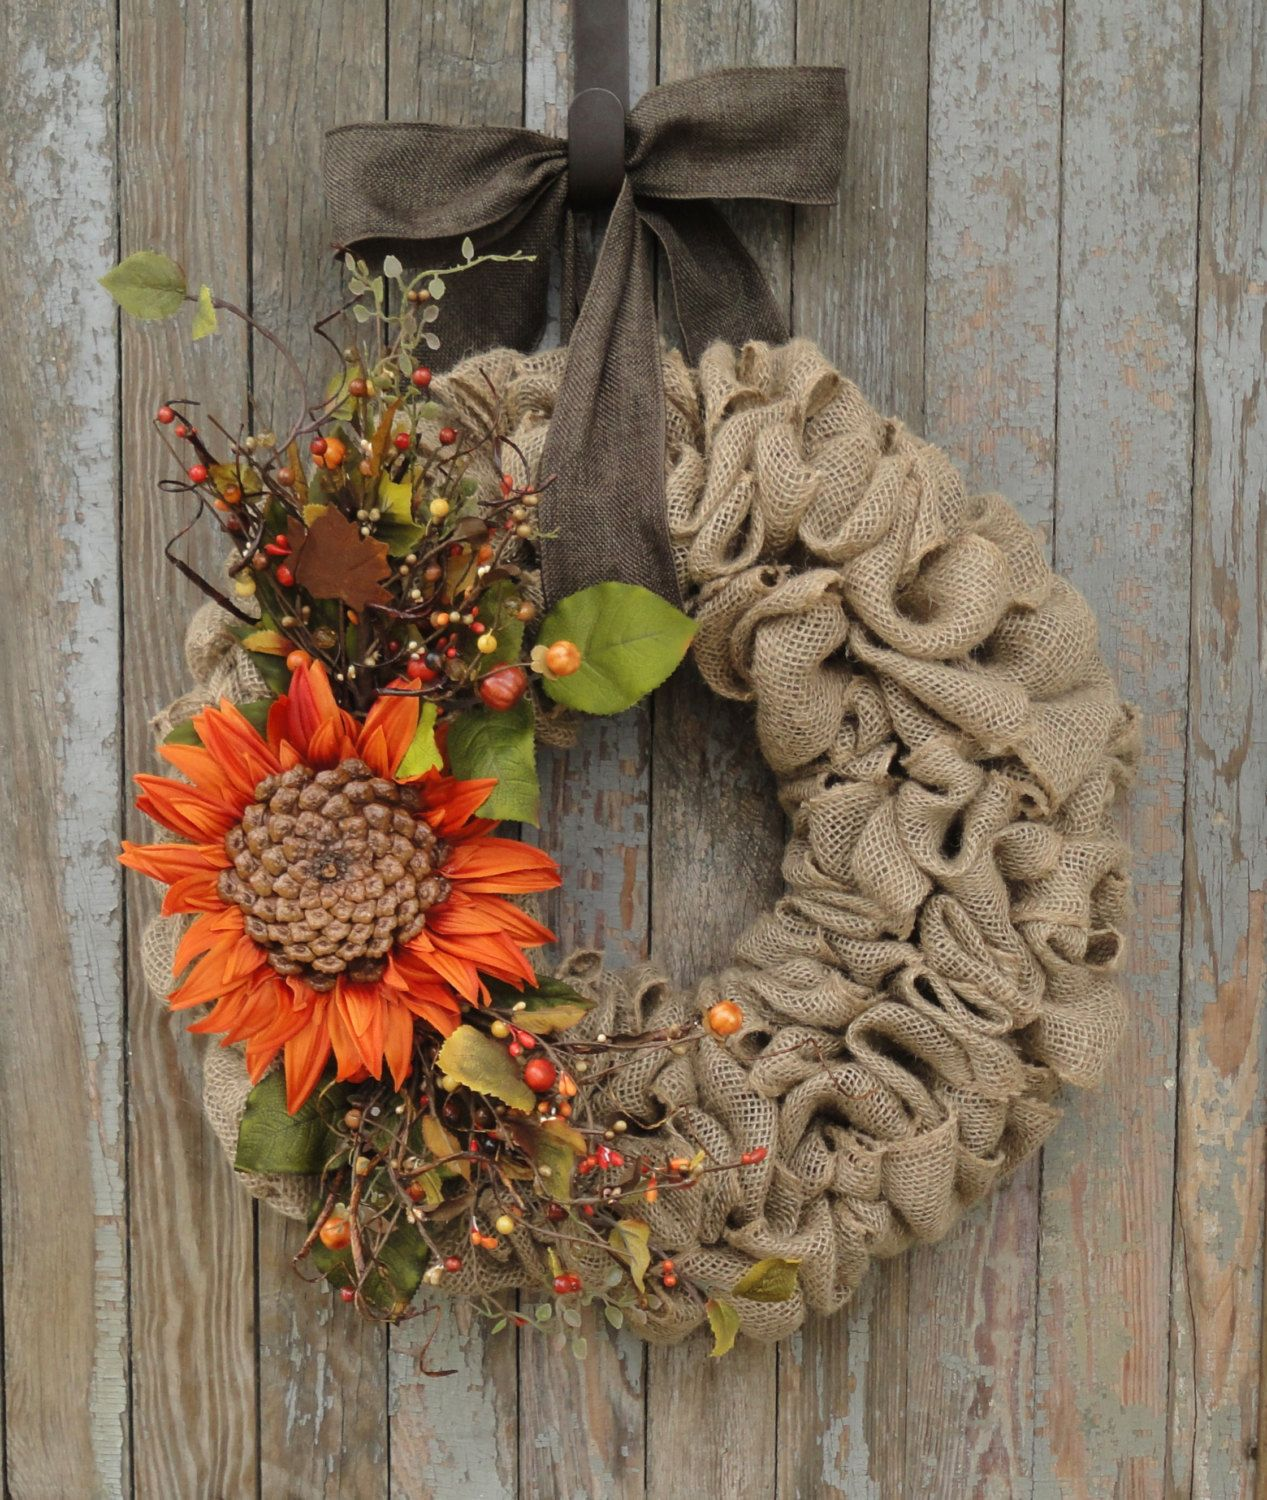 Sunflower Burlap Wreath, Fall Burlap Wreath, Autumn Burlap Wreath ...